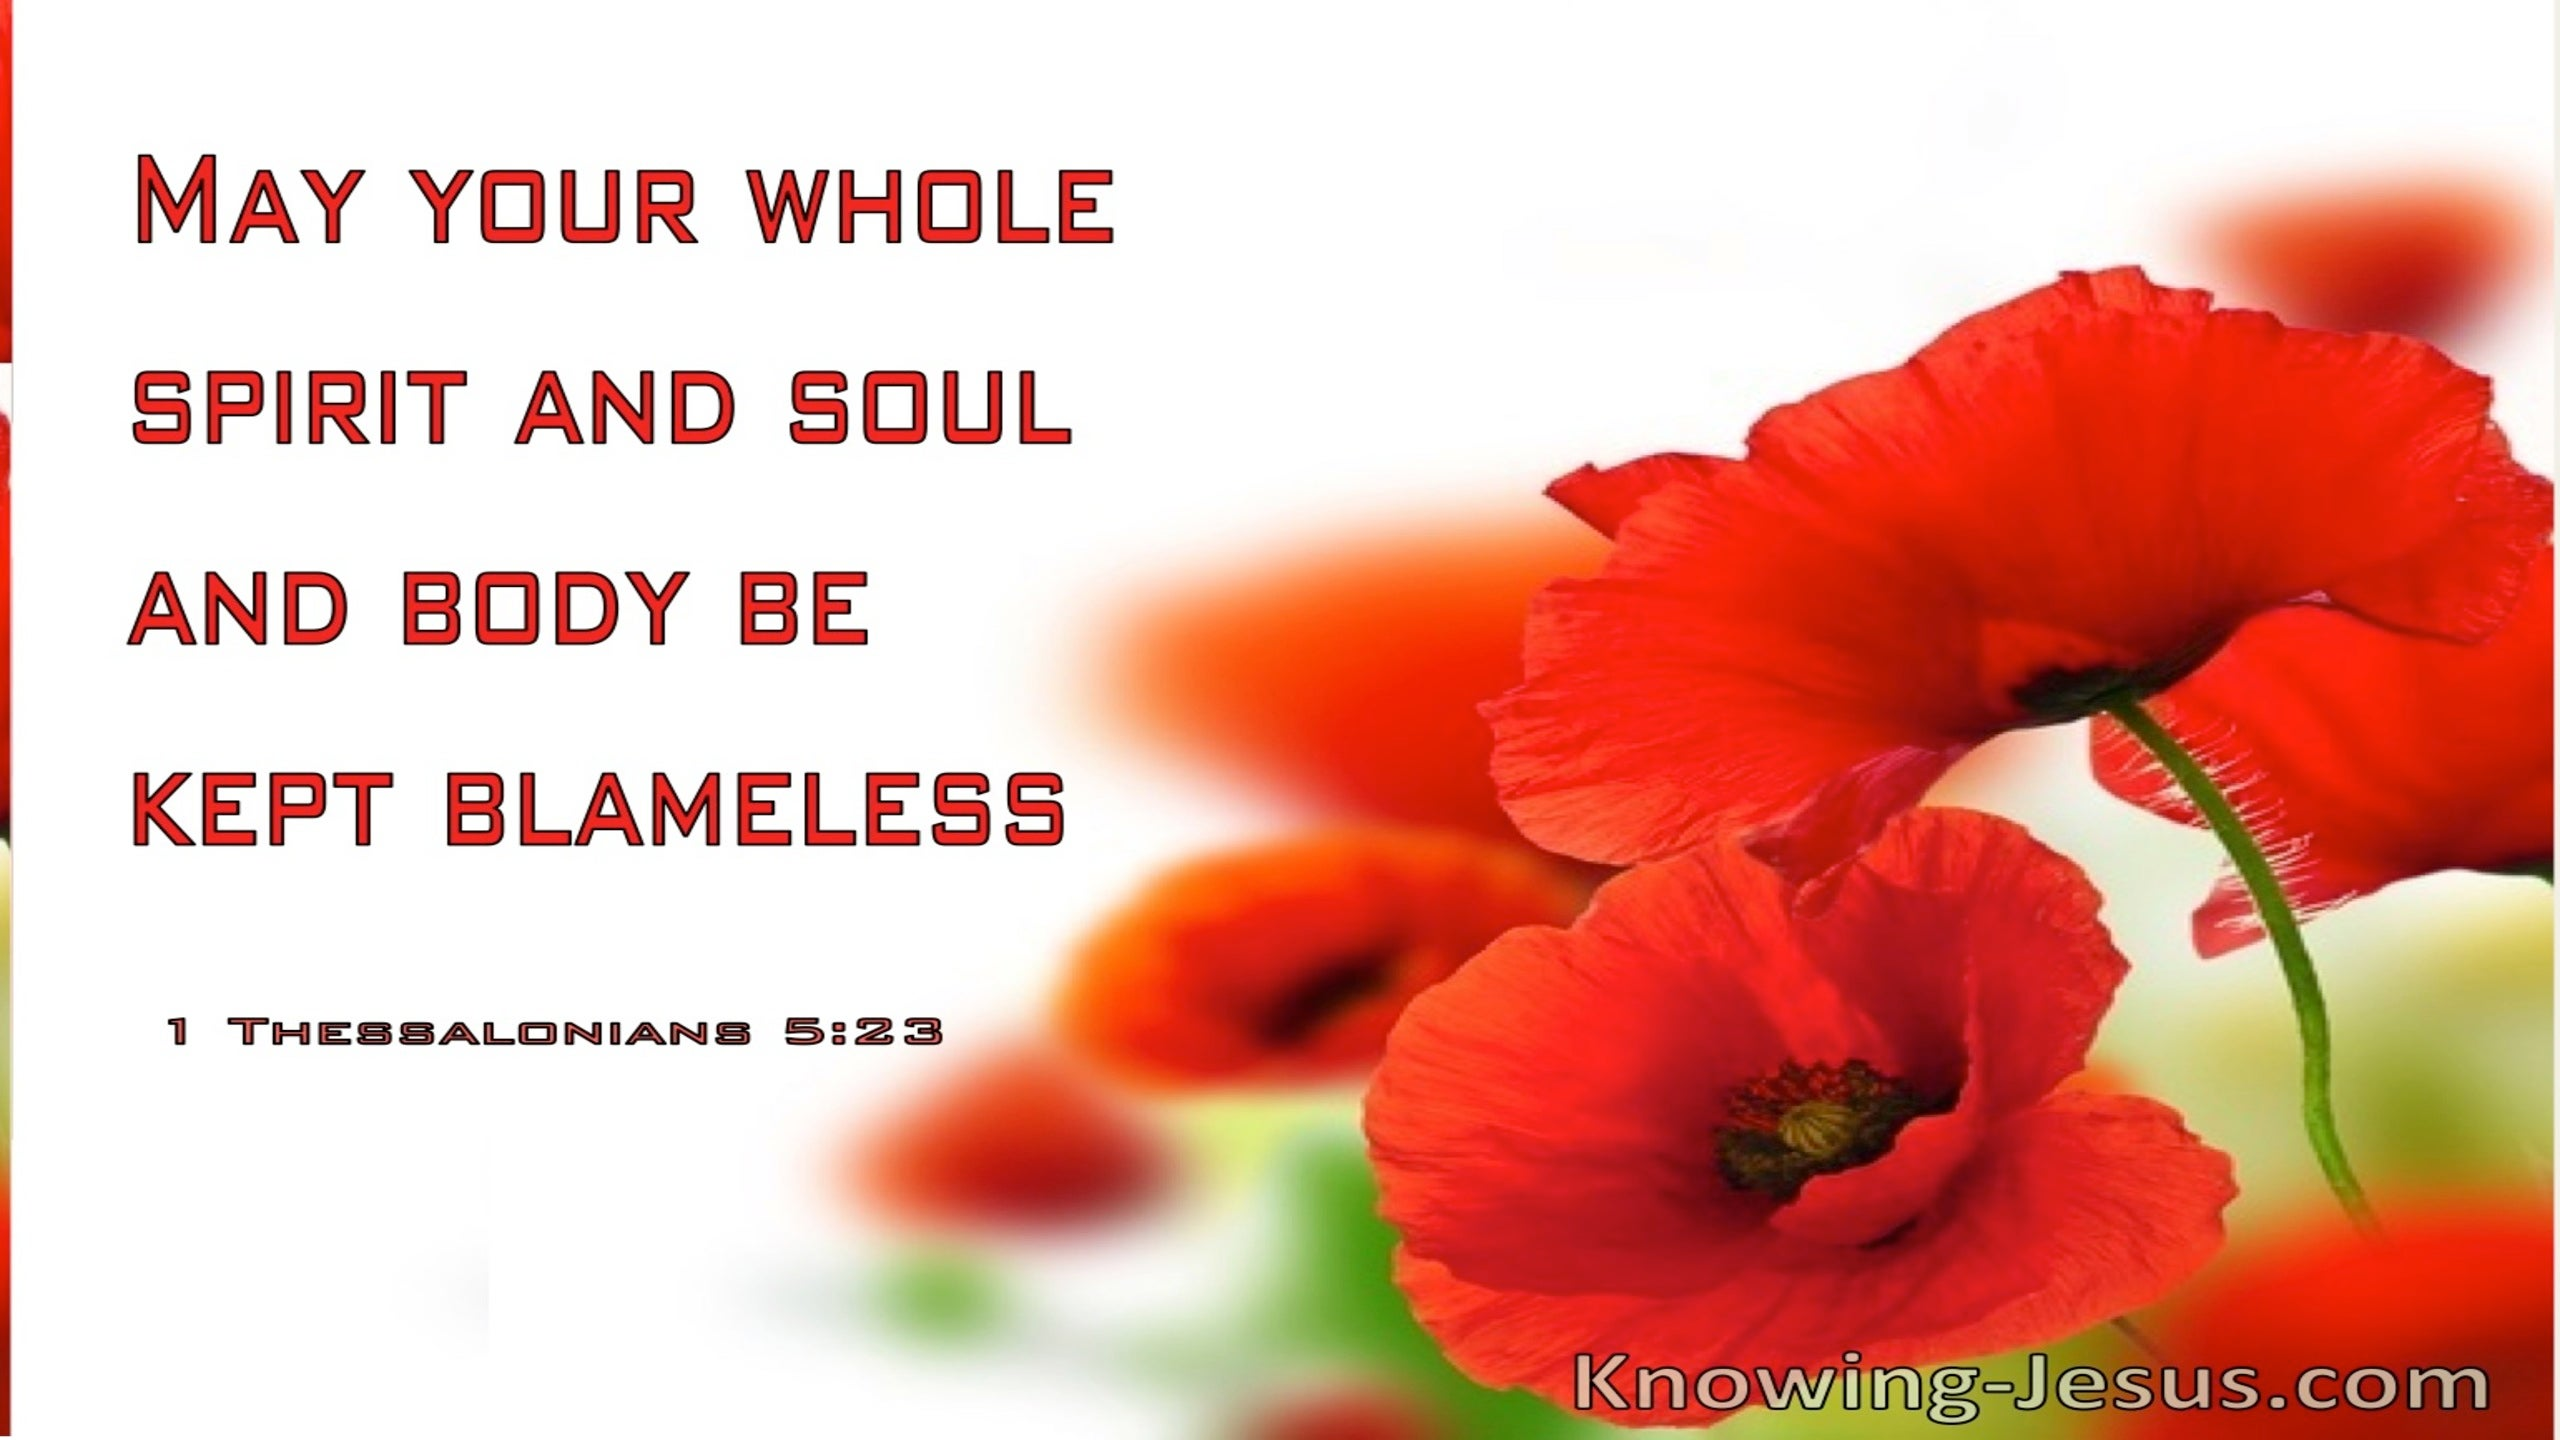 1 Thessalonians 5:23 May Your Whole Spirit, Soul And Body Be Kept Blameless (windows)03:02